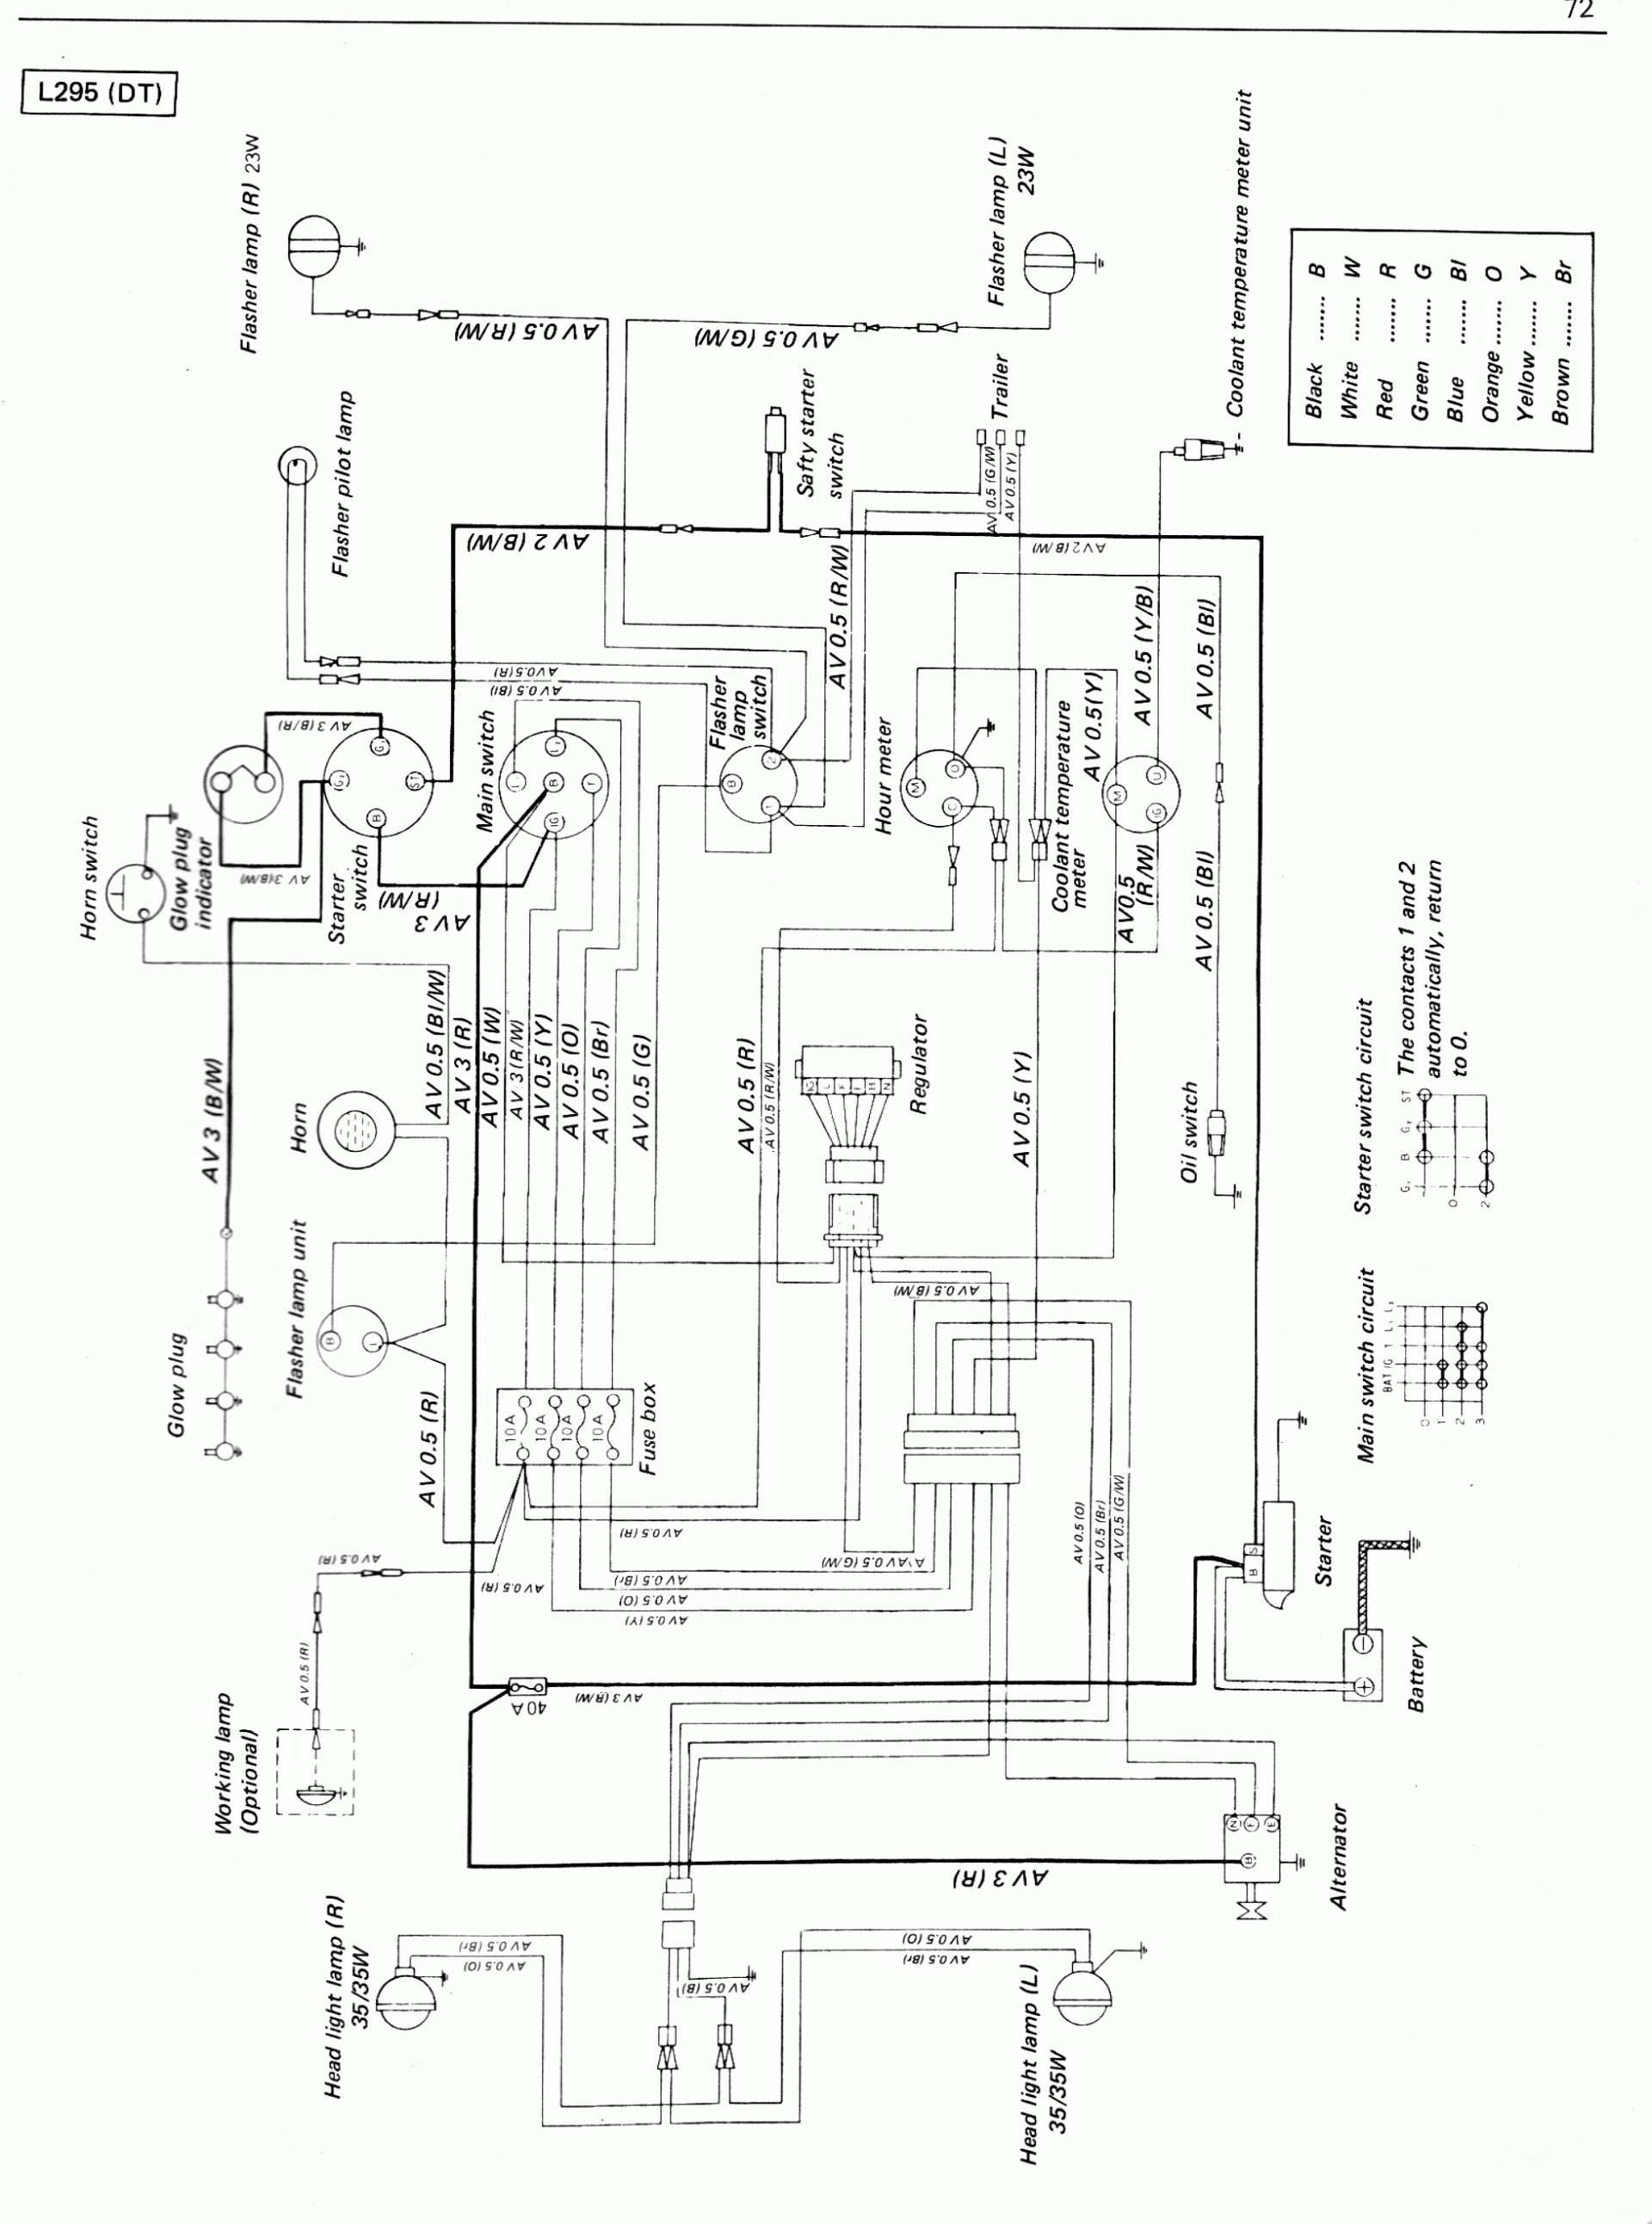 kubota tractor l 2800 starter wiring diagrams wiring diagramskubota tractor wiring diagrams everything wiring diagram kubota tractor diagrams wiring diagram experts kubota tractor wiring